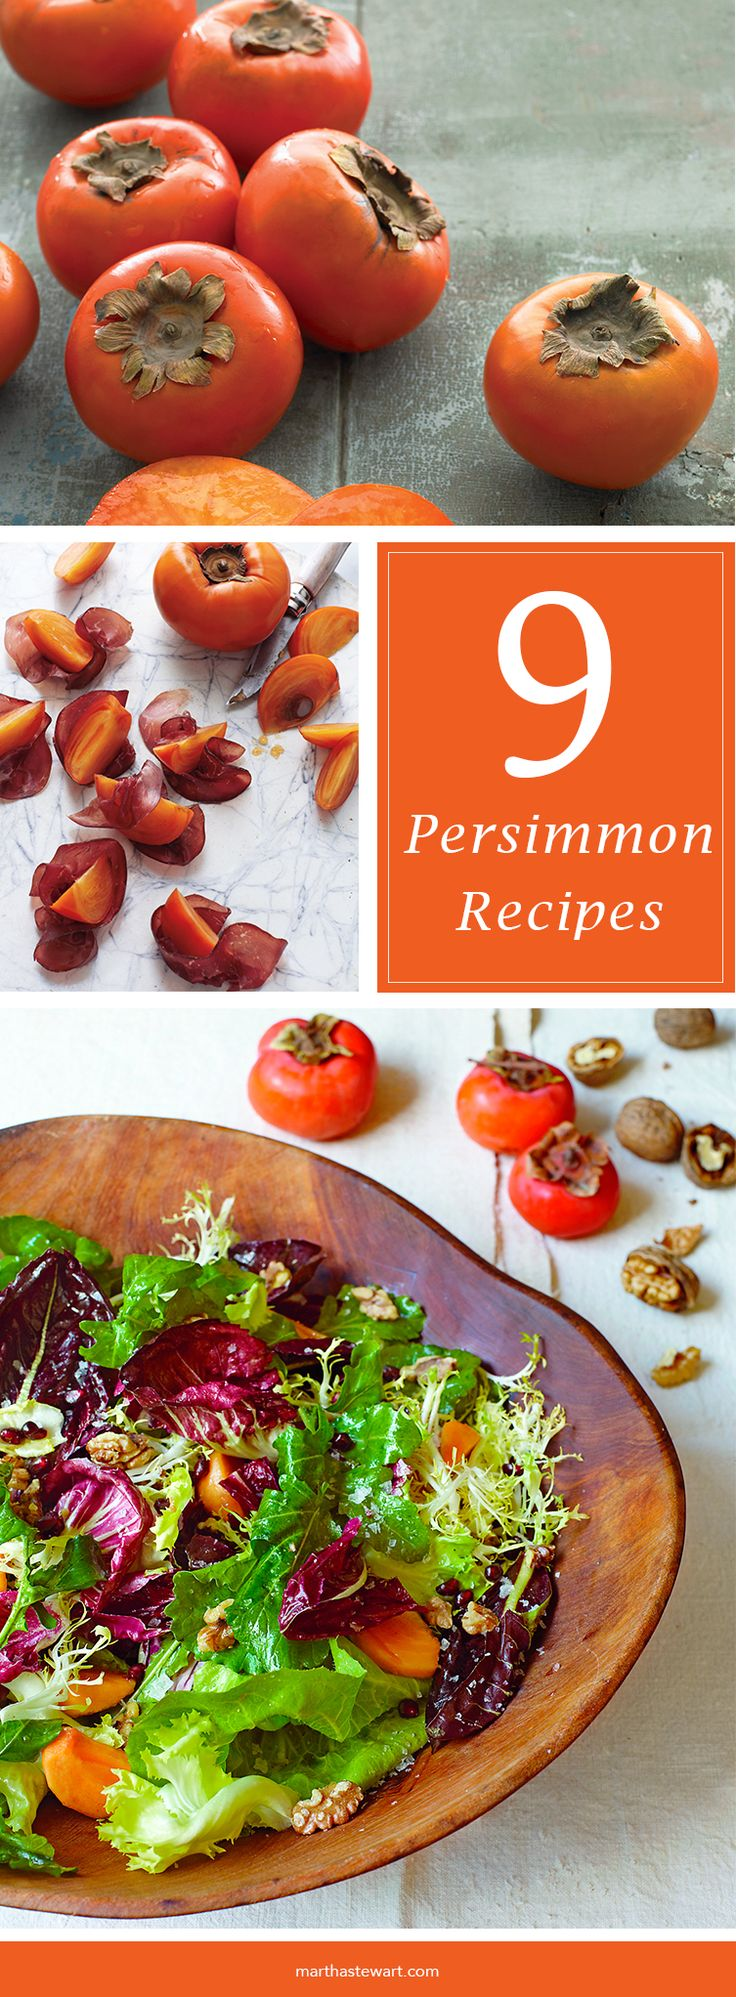 Persimmon Recipes | Martha Stewart Living - There are two main varieties of persimmon commercially available in the U.S.: the acorn-shaped Hachiya and the squat, tomato-shaped Fuyu. Persimmons begin appearing in markets in late September and are available through December.